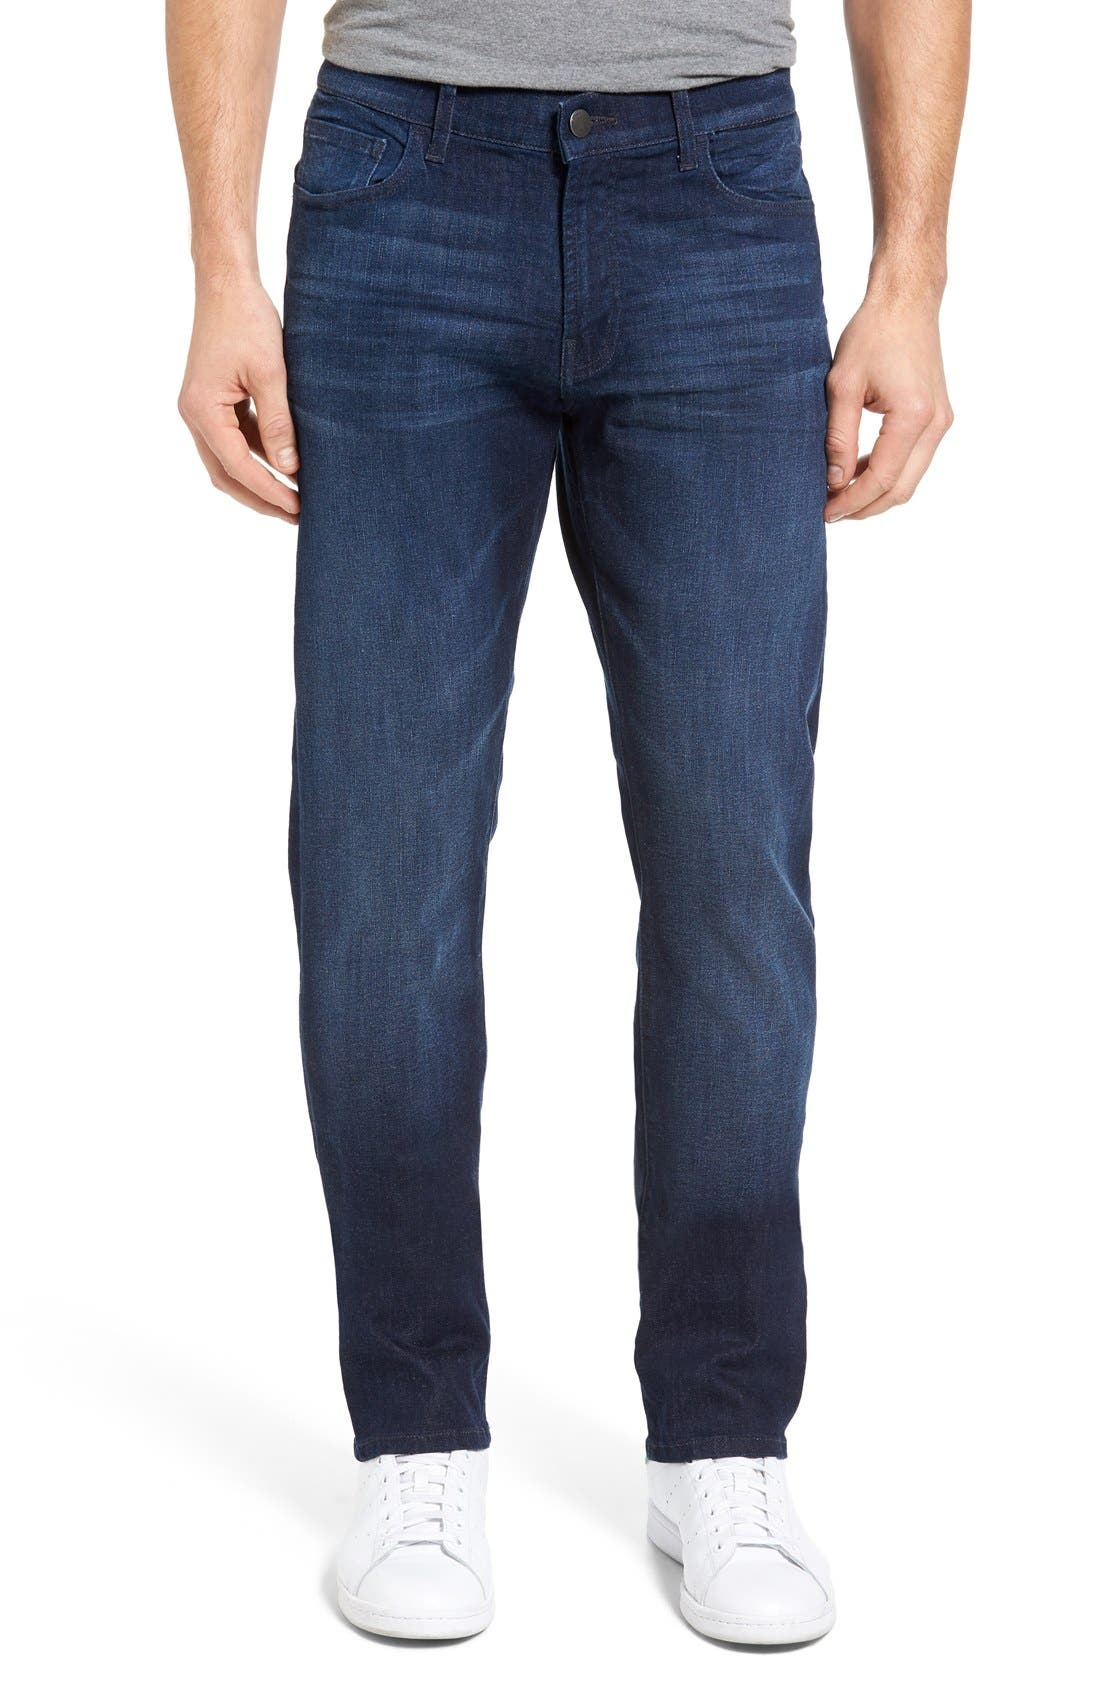 DL1961 Russel Slim Fit Jeans (Lens)